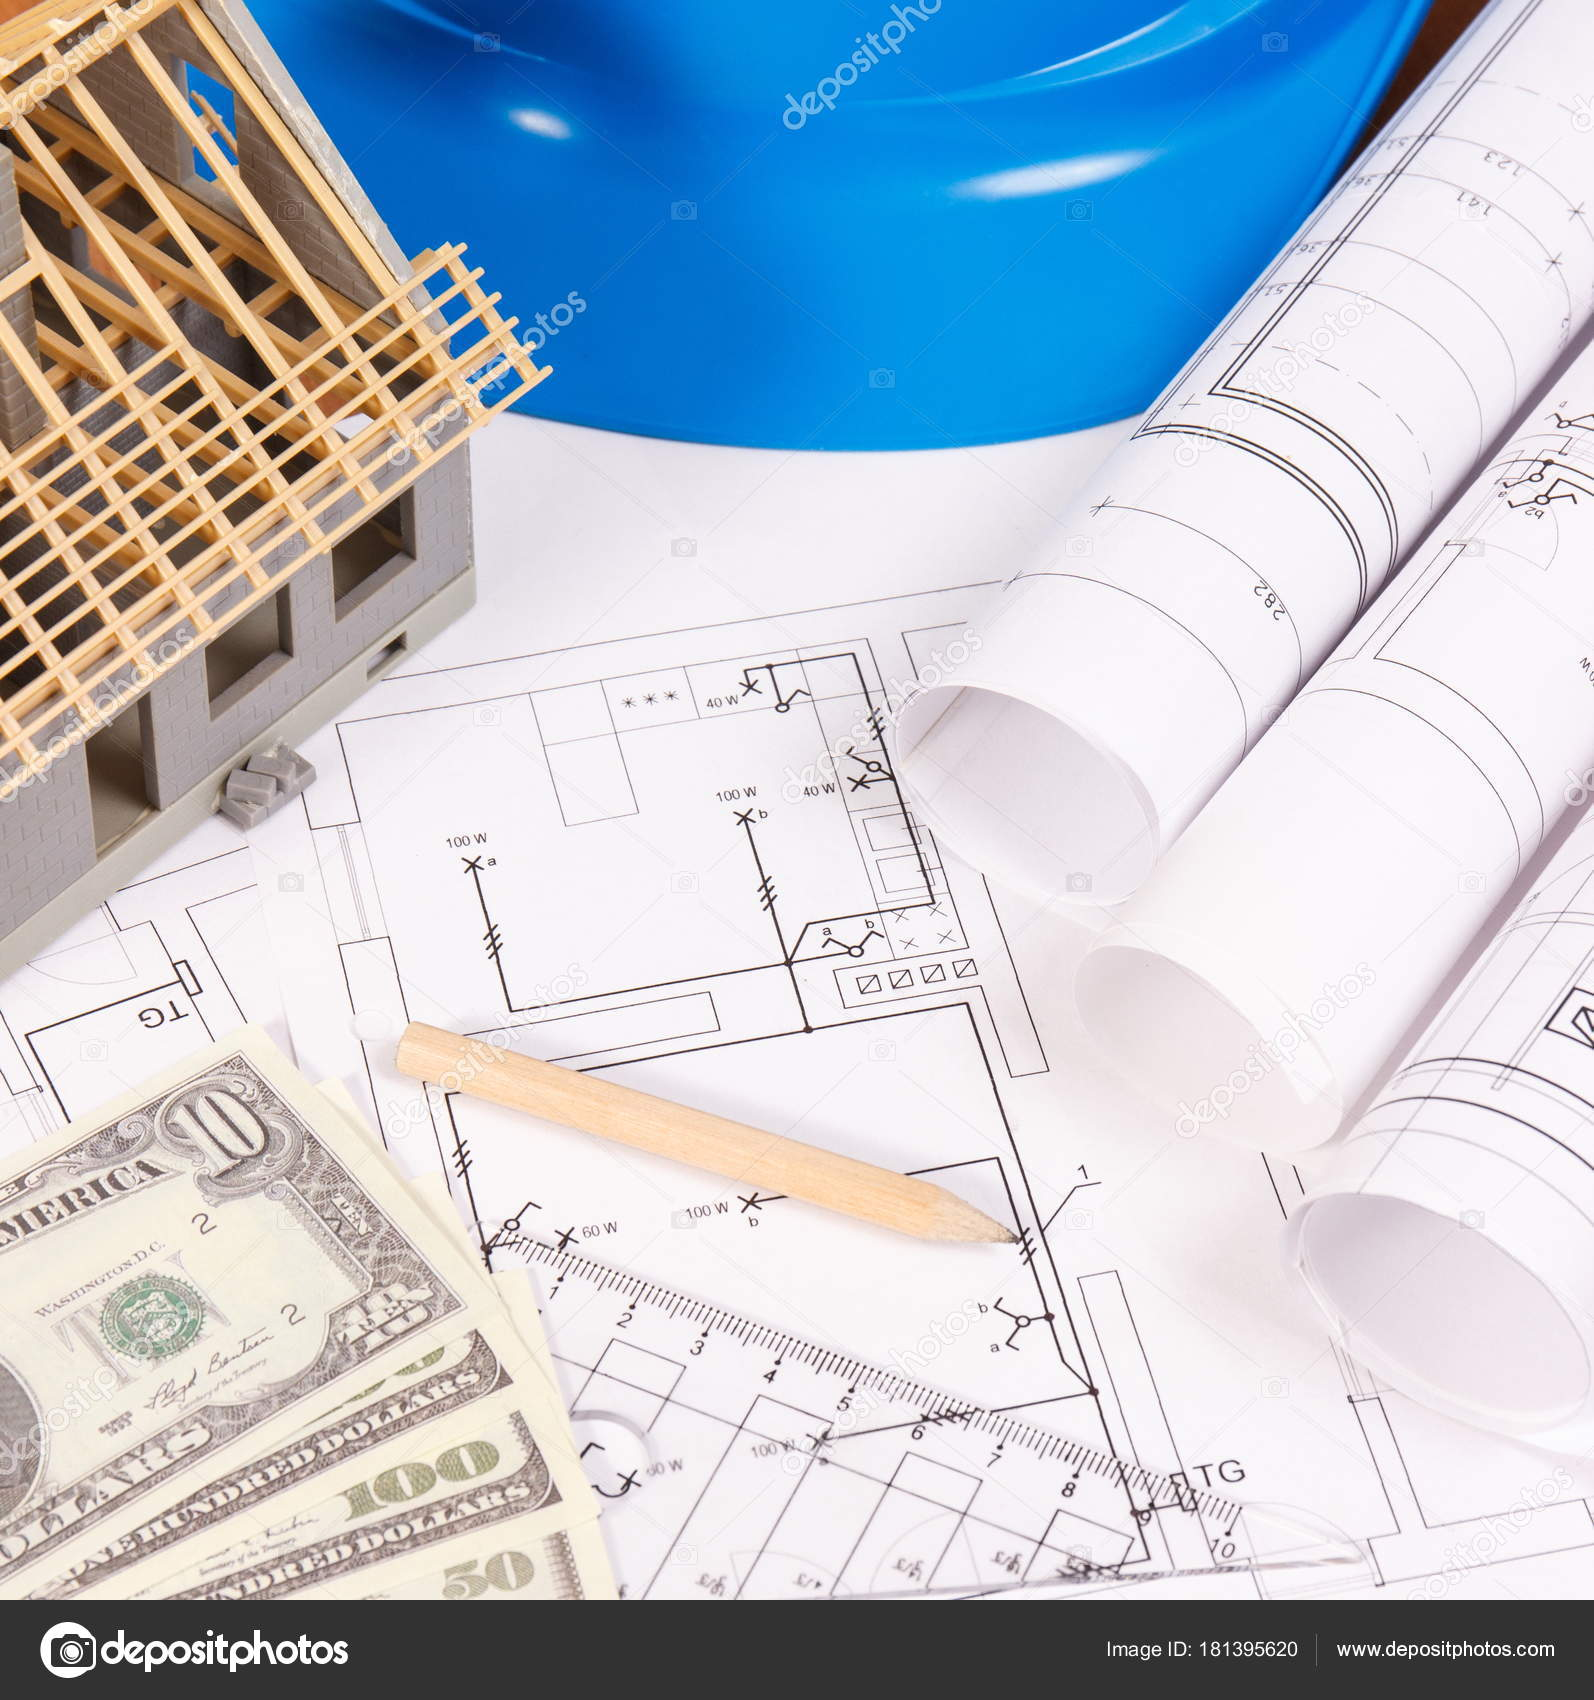 Currencies Dollar Electrical Diagrams Accessories For Engineer Engineering Jobs And House Under Construction Building